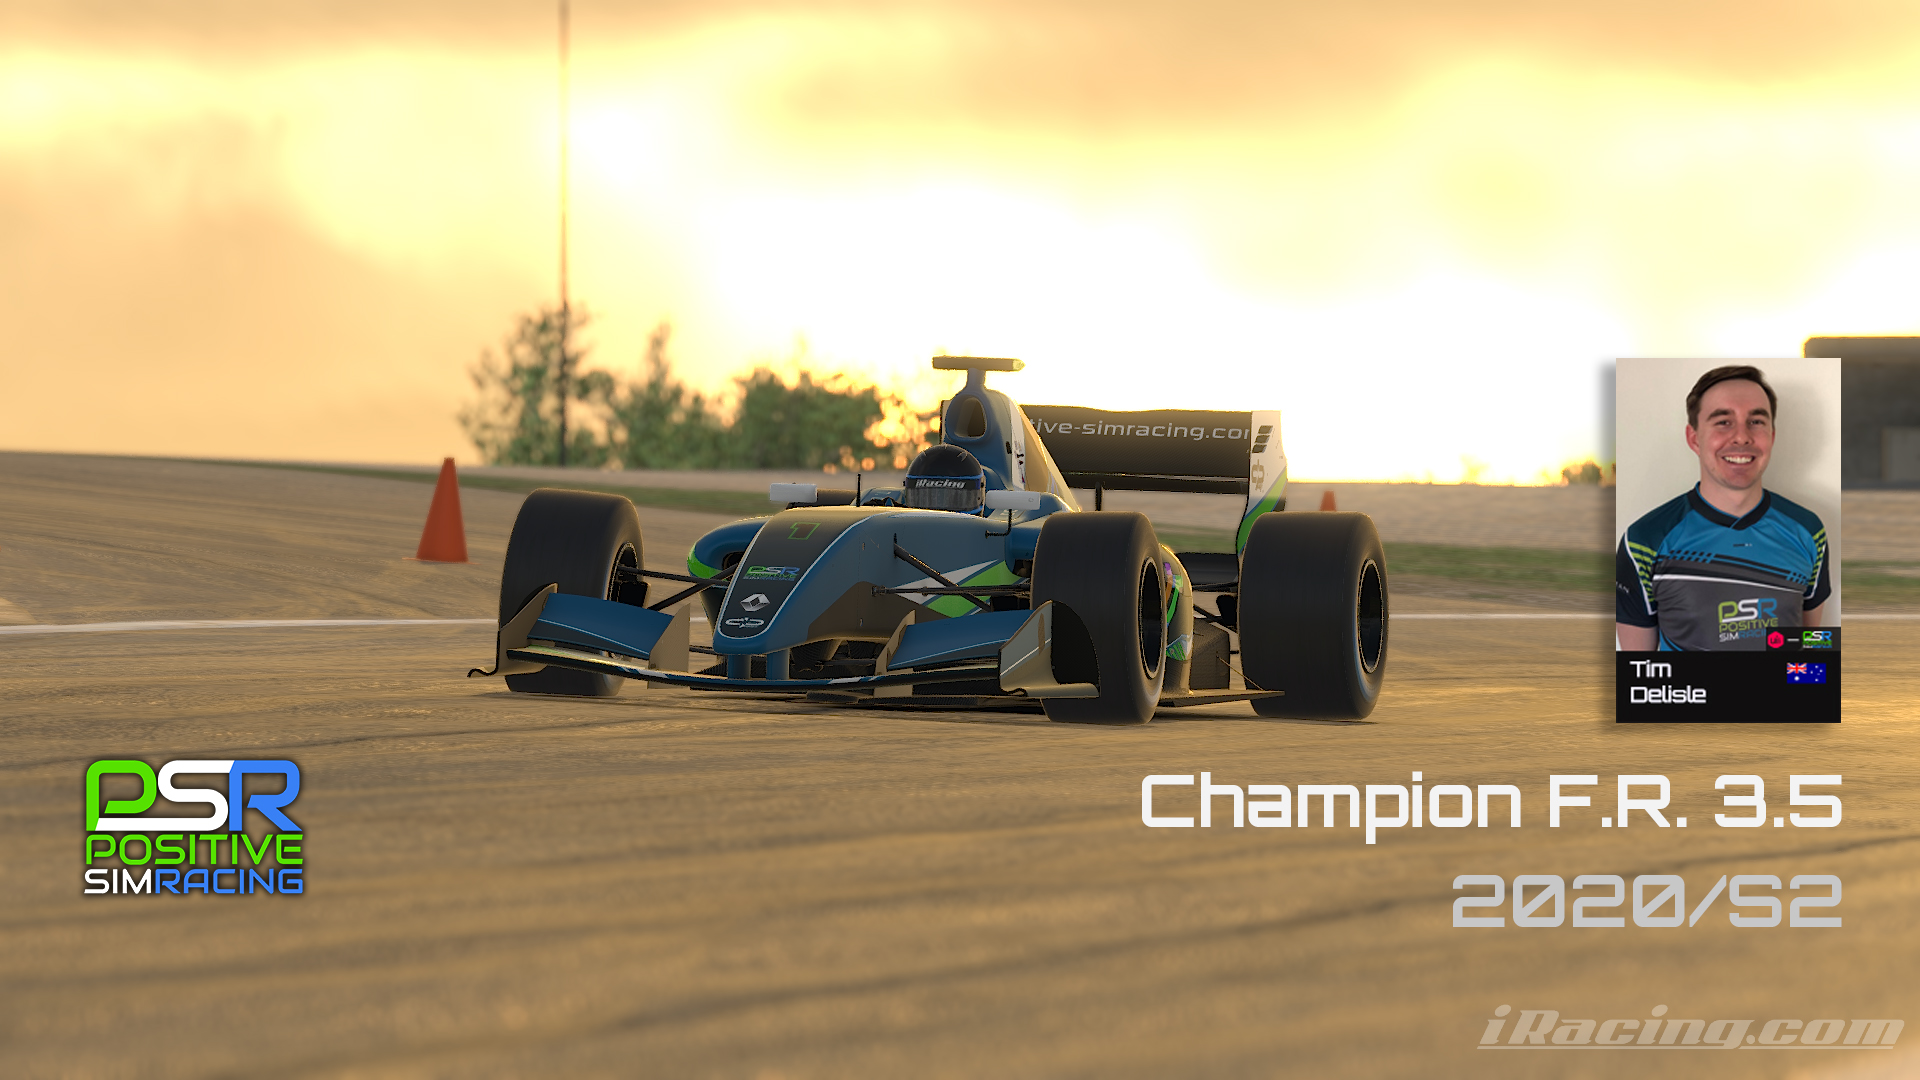 New points record in the iRacing FR3.5 series